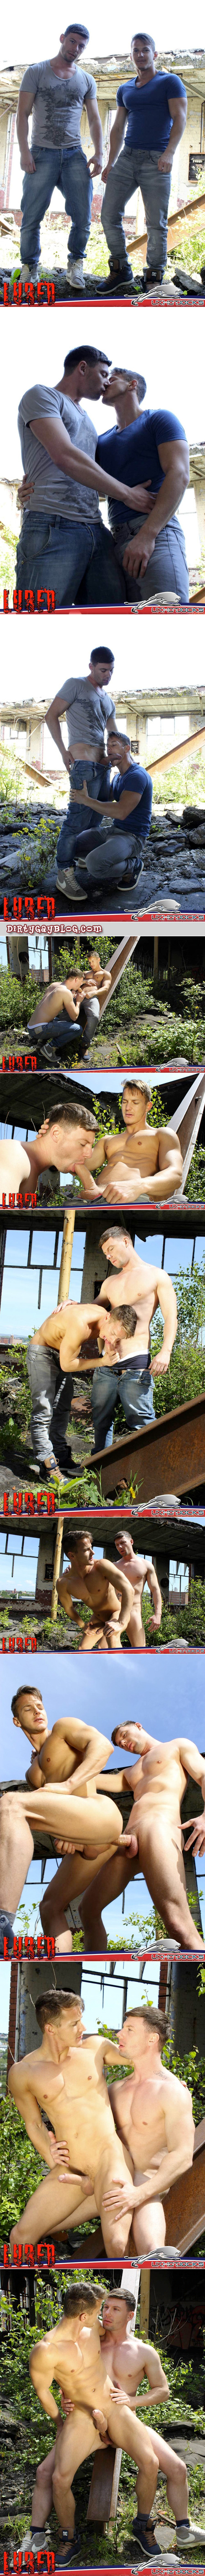 Muscular young men with huge uncut cocks fucking outdoors.